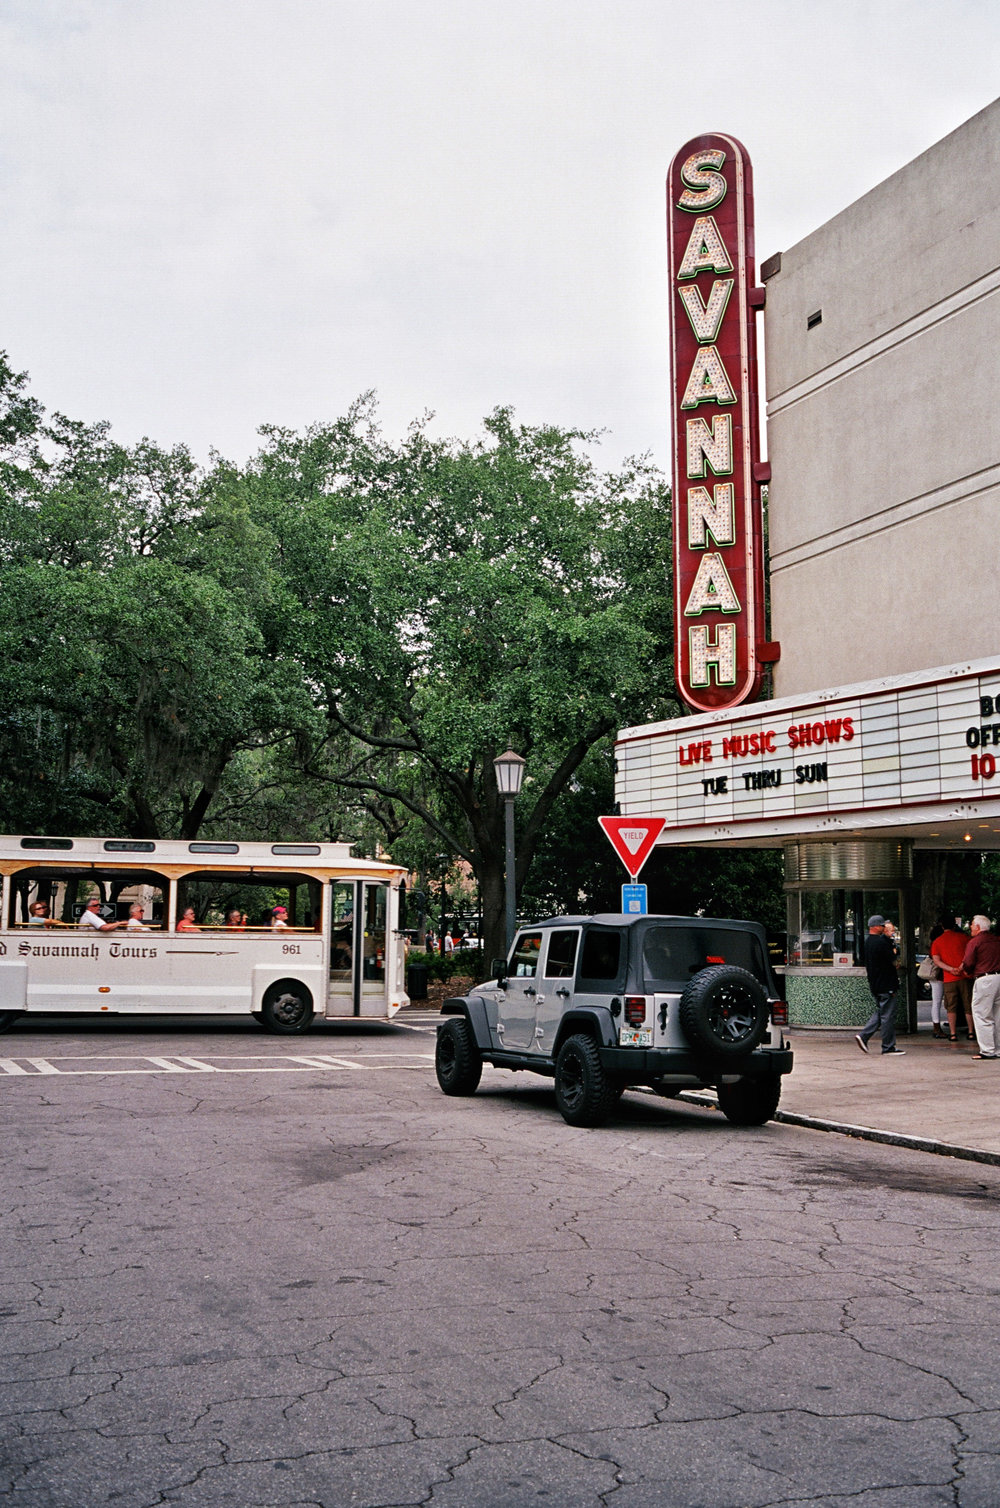 savannah theatre 35mm film kodak portra 400